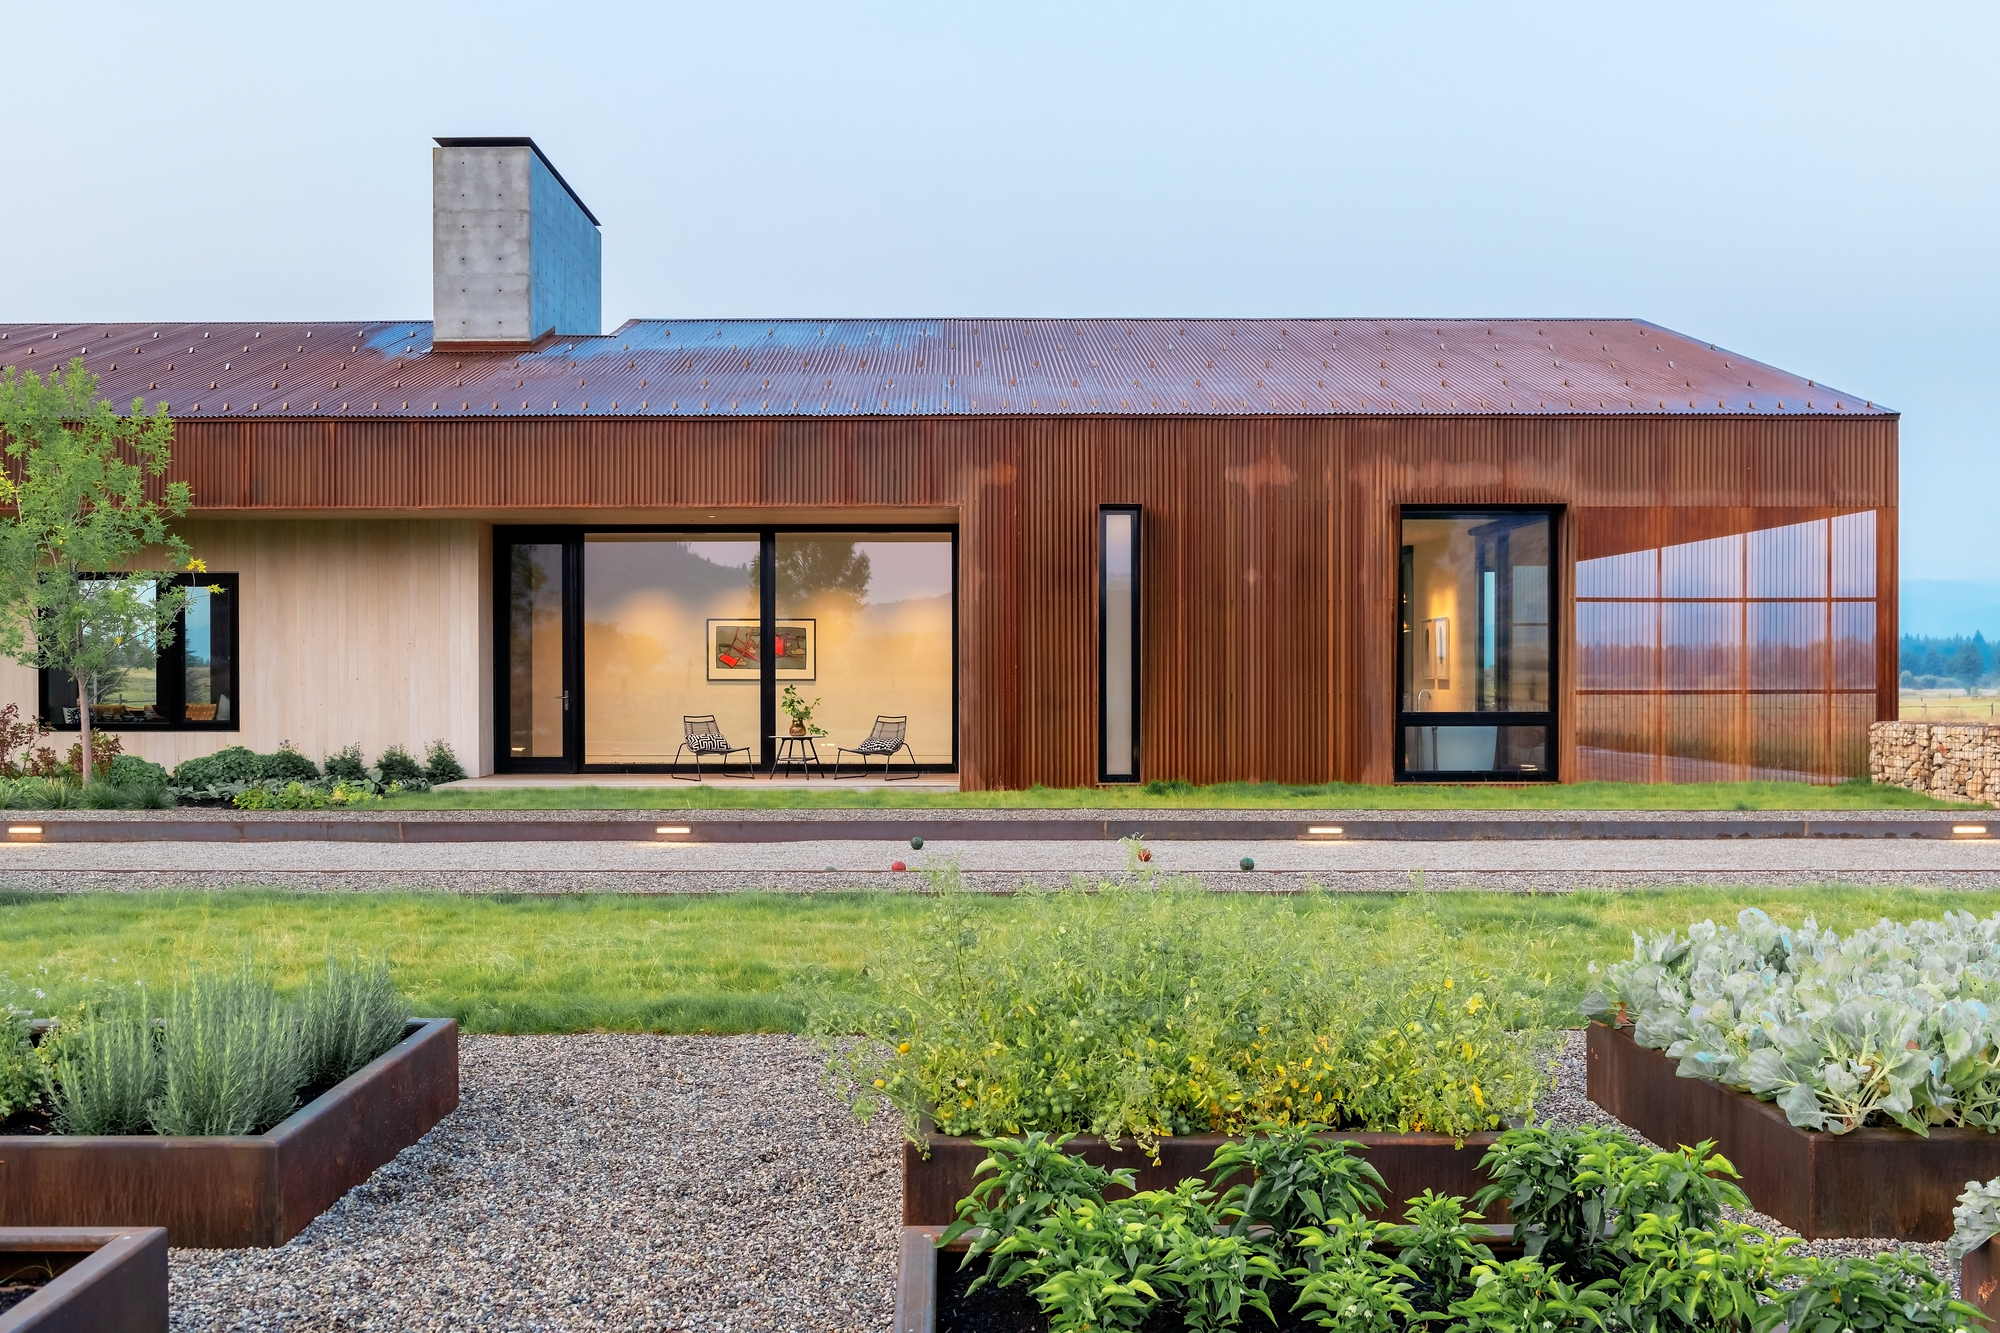 Oxidized-metal-wood-and-glass-shape-the-exterior-of-the-asymmetrical-Dogtrot-House-87002